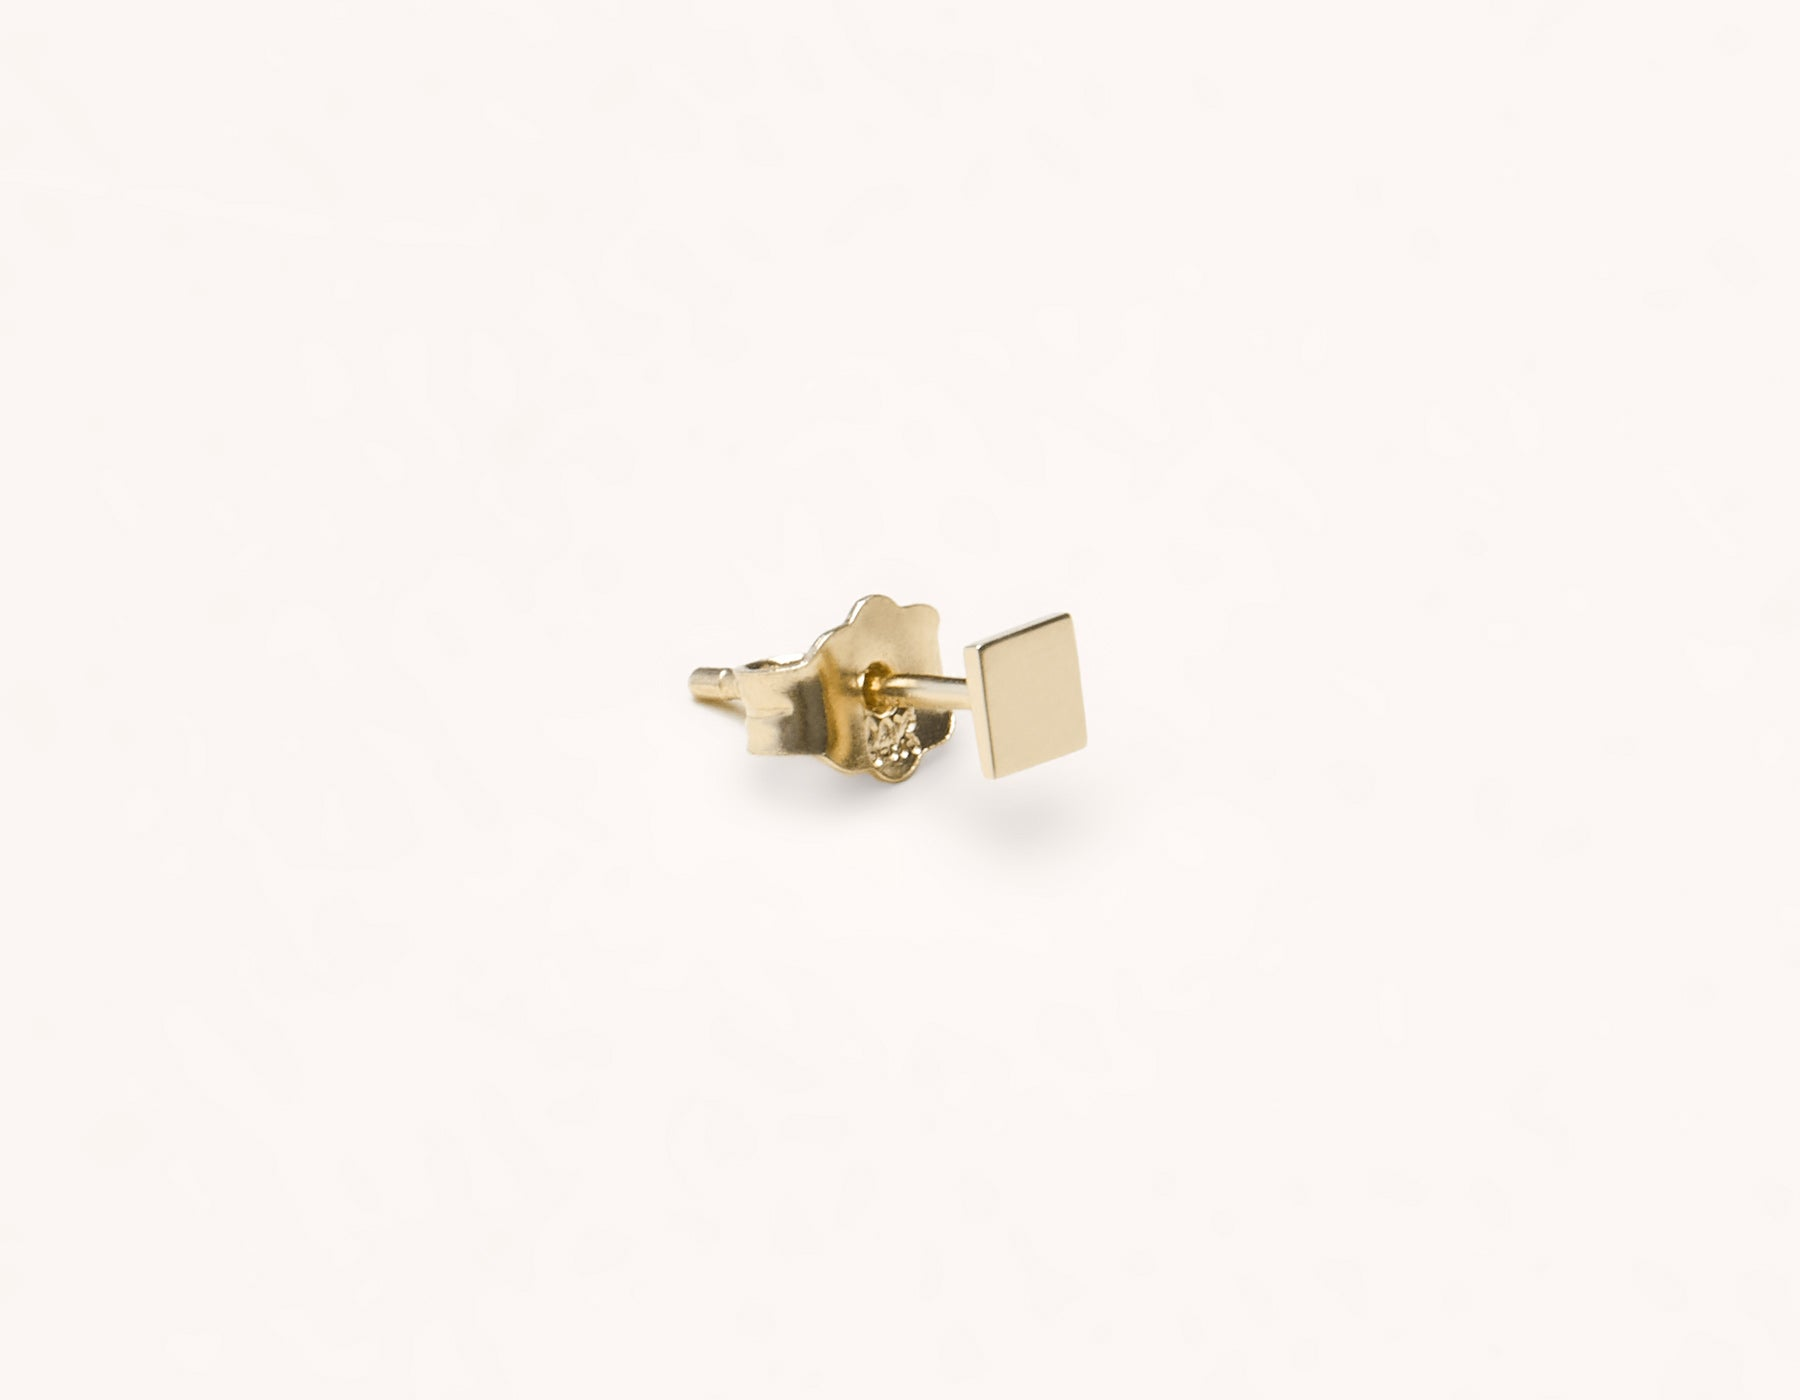 Basic subtle Square Stud earring 14k solid gold Vrai & Oro versatile jewelry, 14K Yellow Gold